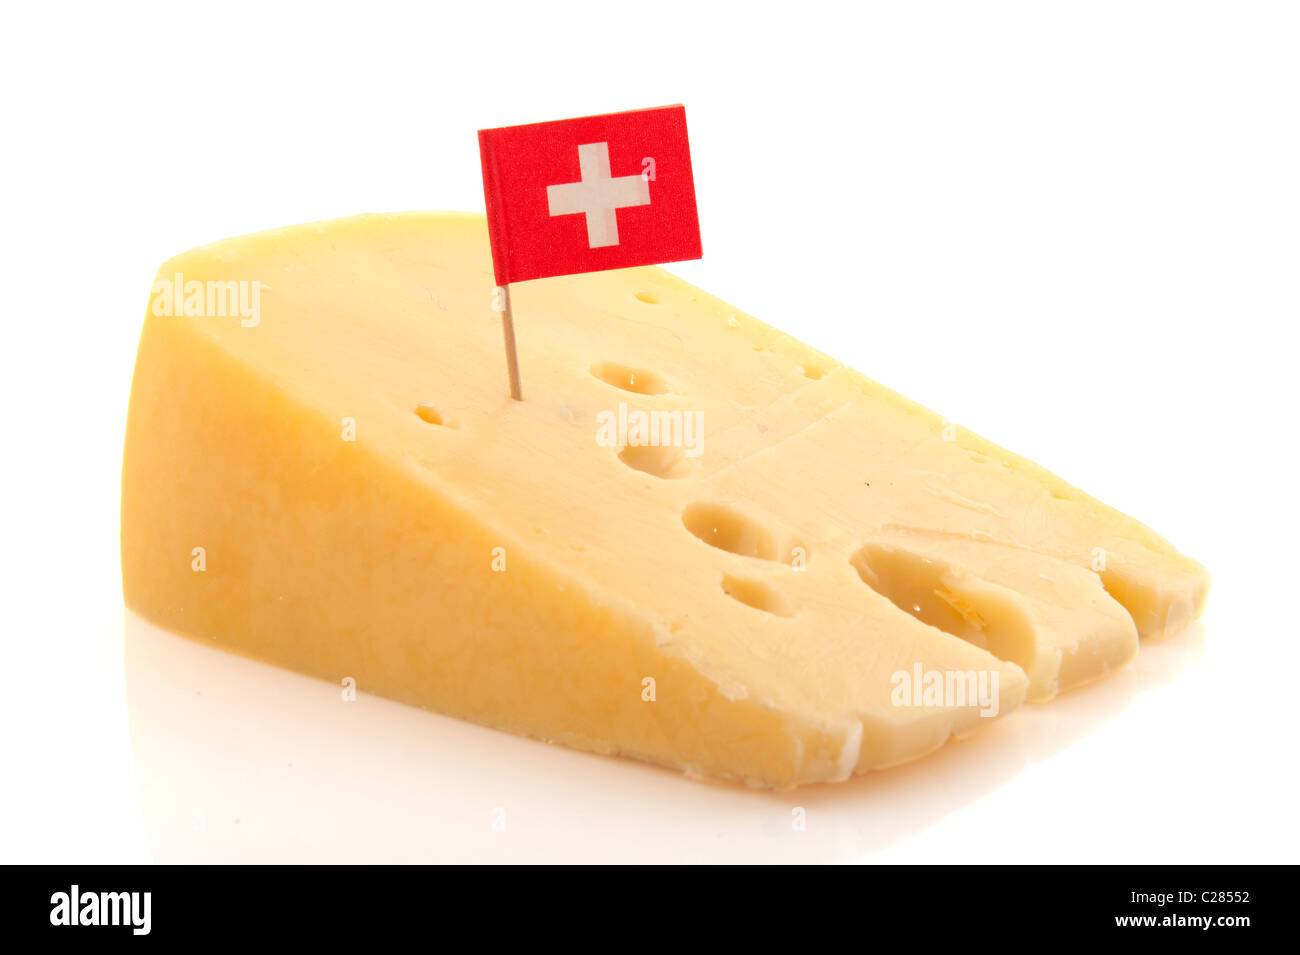 swiss cheese cubes stock photos swiss cheese cubes stock images